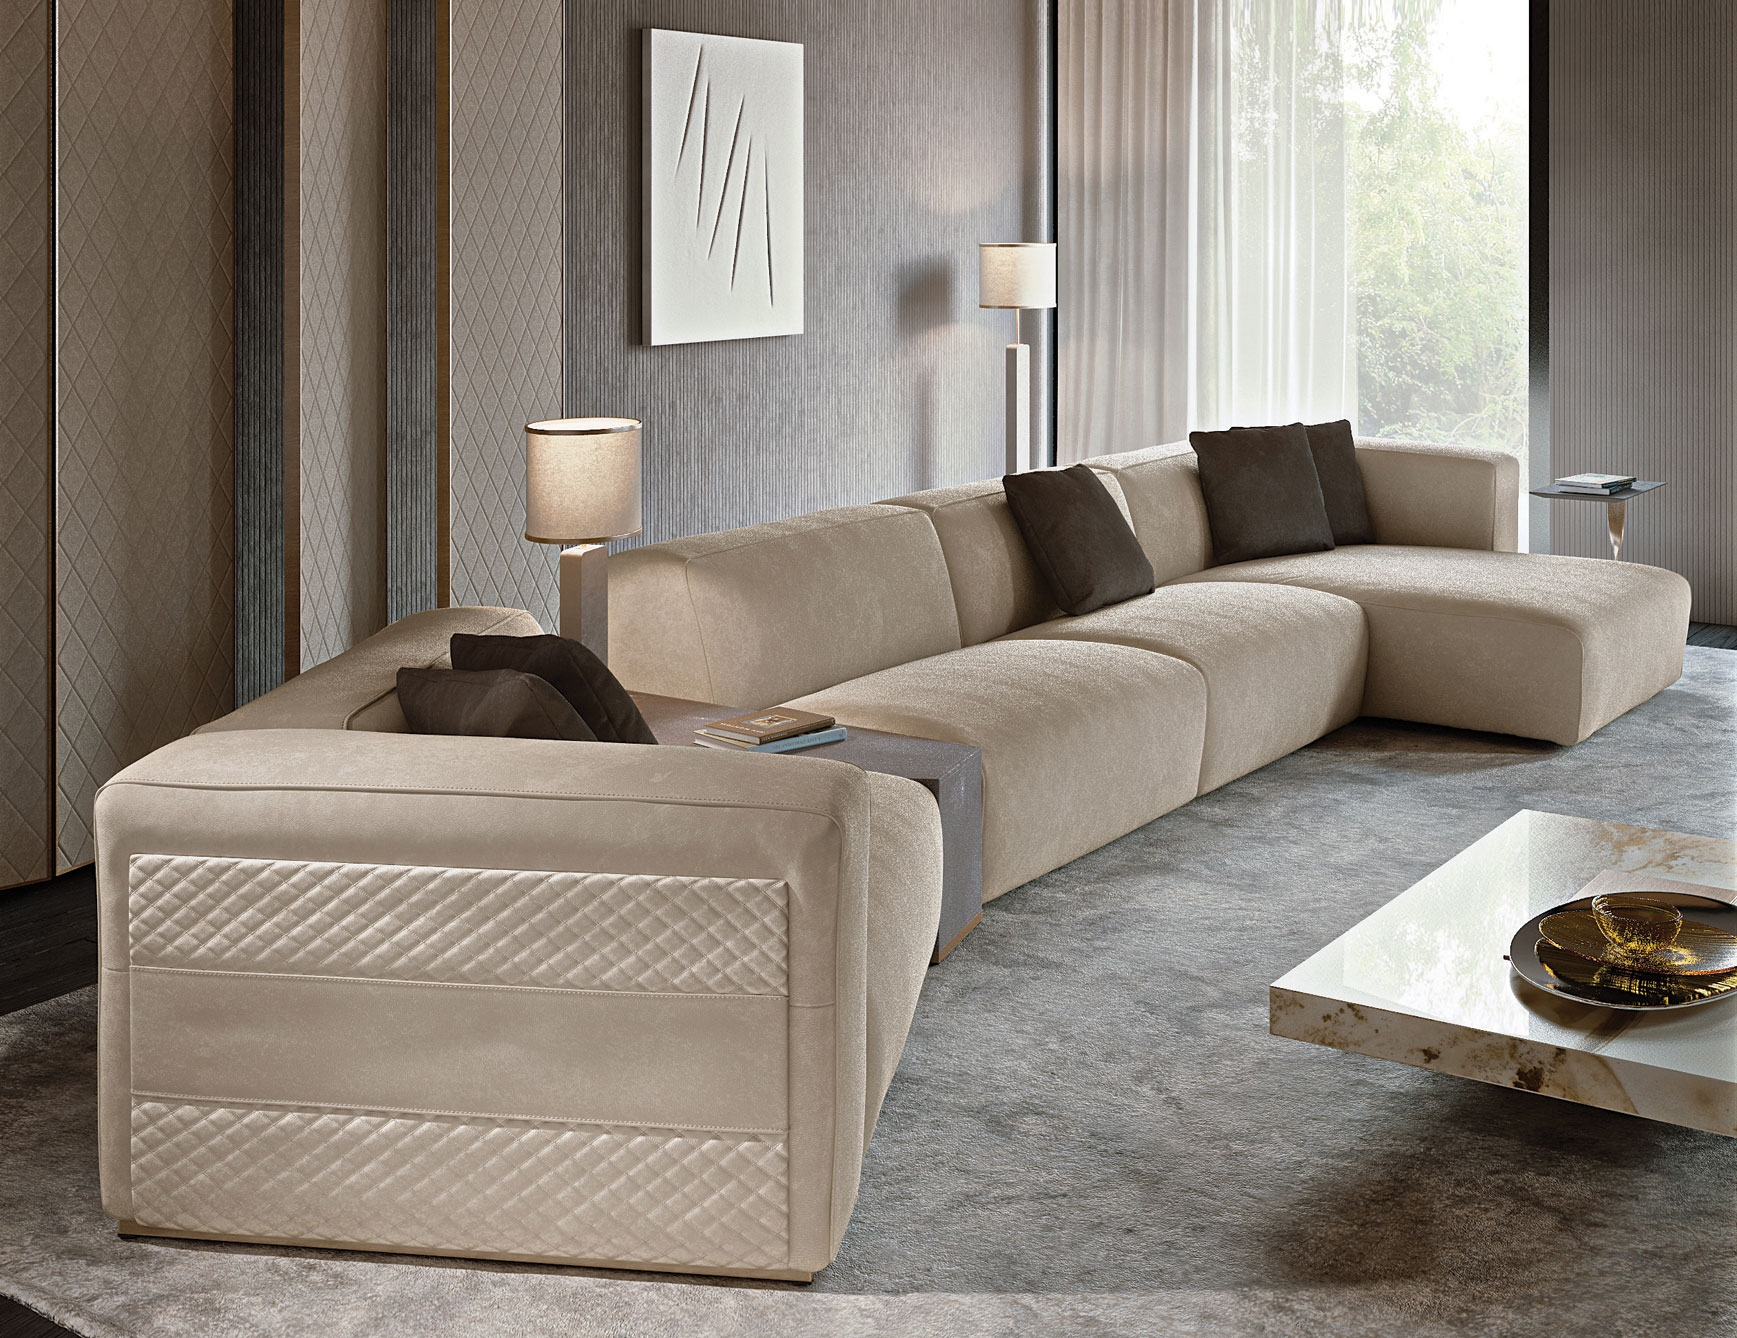 Italian Designer Luxury High End Sofas Sofa Chairs Nella Vetrina Within Sofas And Chairs (Image 4 of 15)